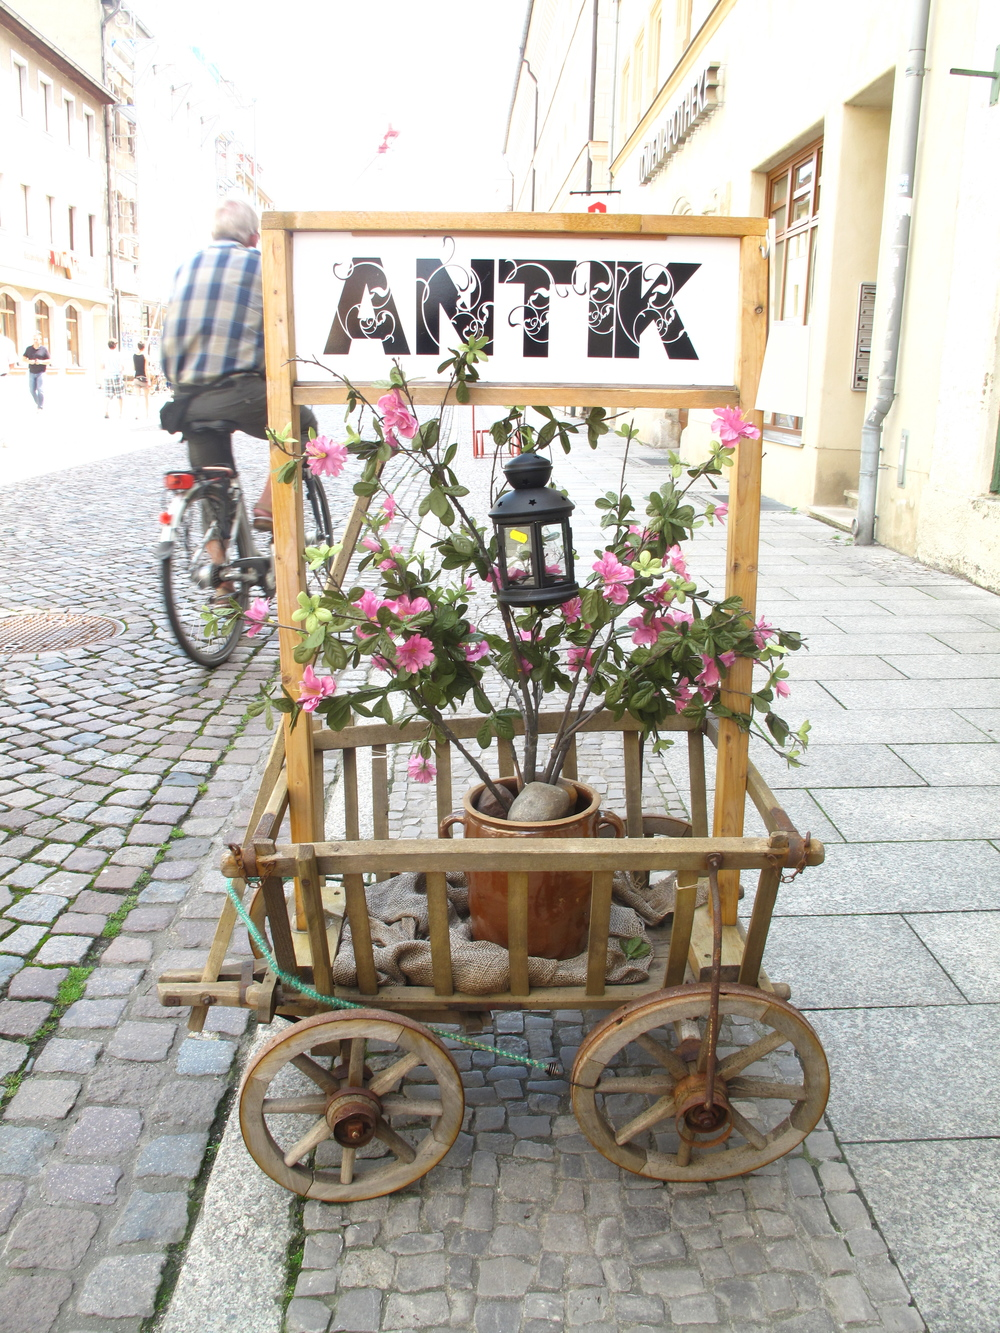 A sign covered in flowers in Wittenberg